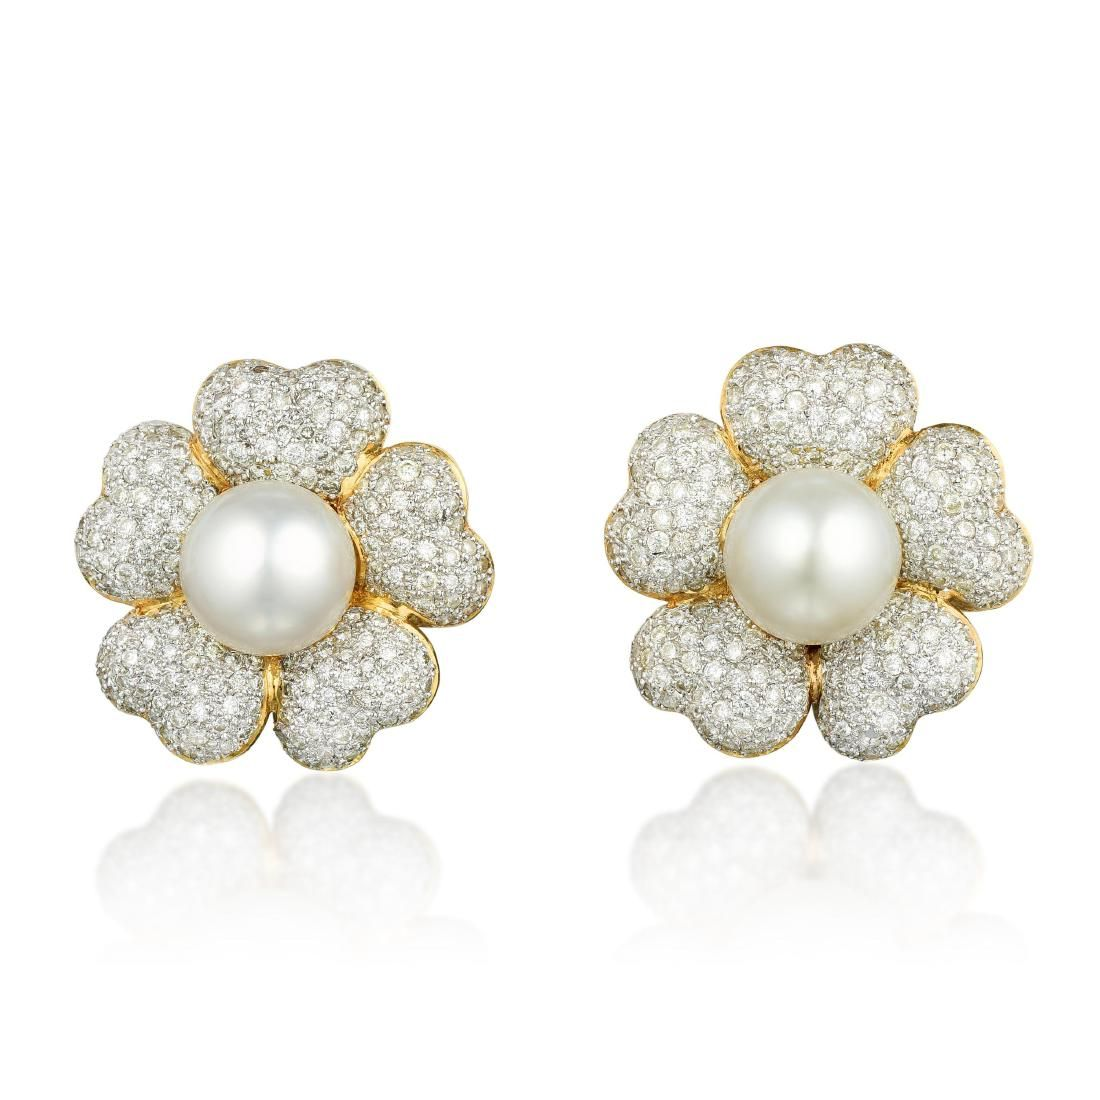 A Pair of Cultured Pearl and Diamond Flower Earclips